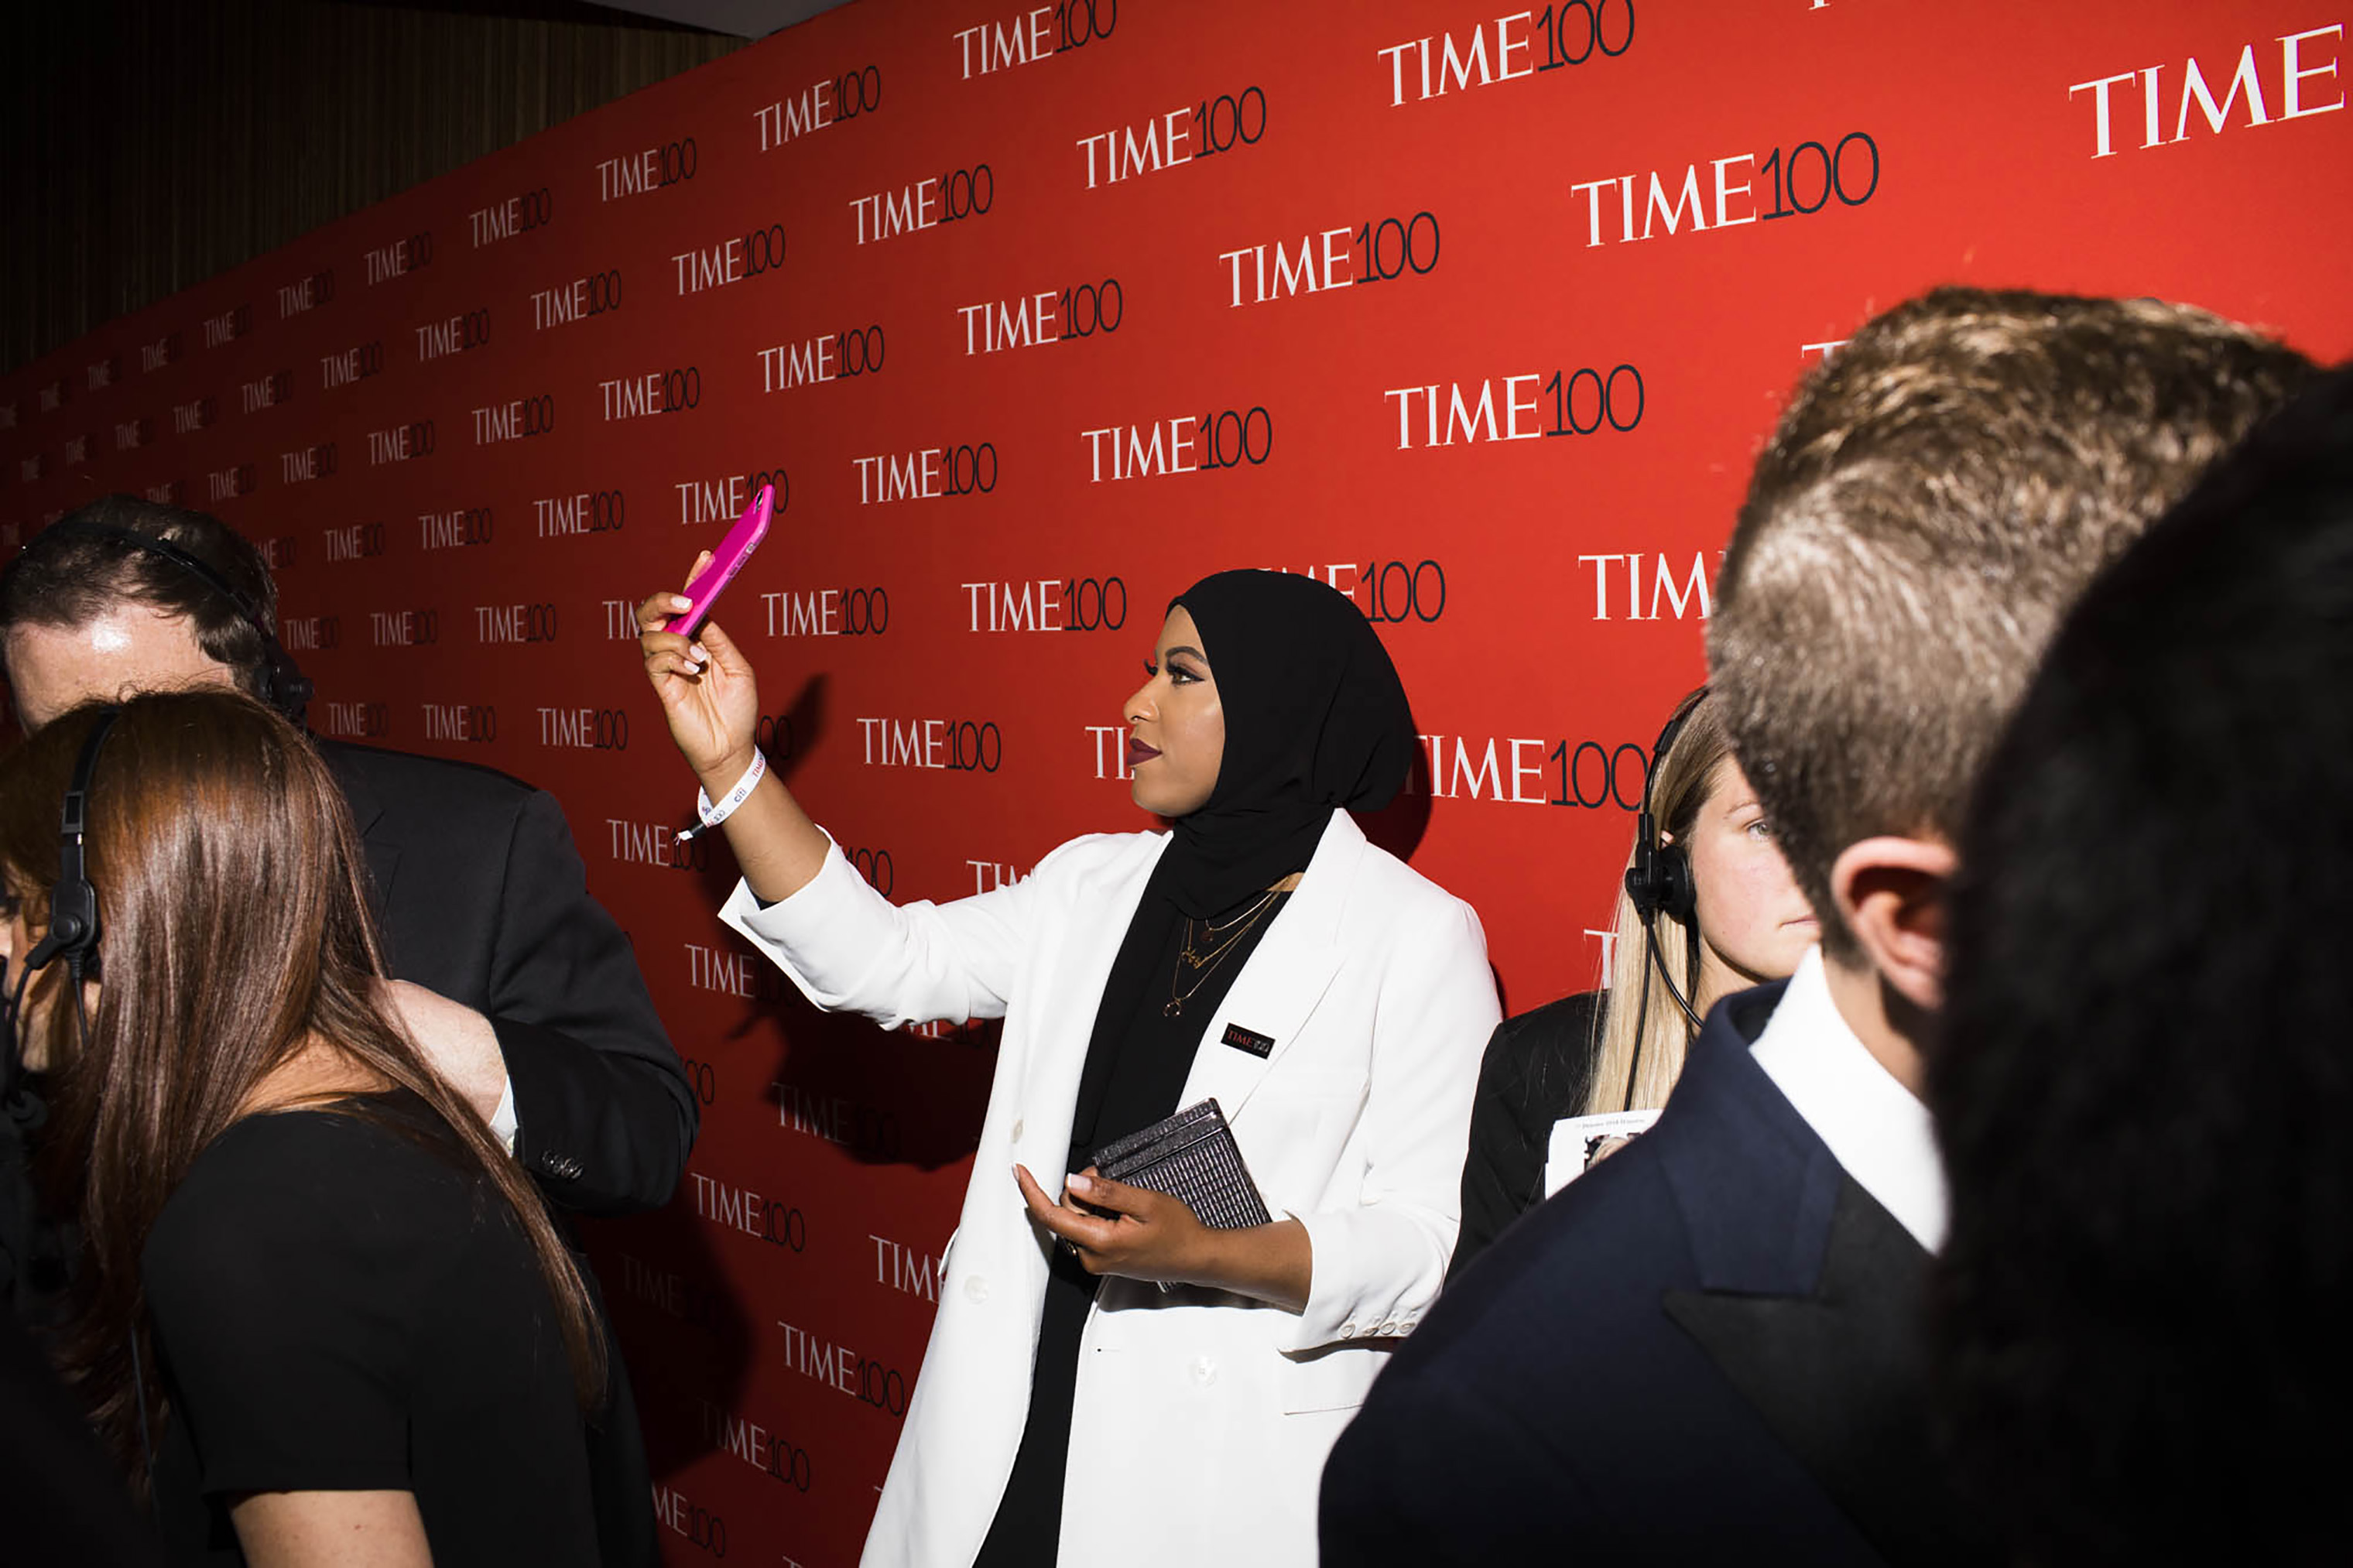 U.S. Olympic fencer Ibtihaj Muhammad at the Time 100 Gala at Jazz at Lincoln Center on April 24, 2018 in New York City.